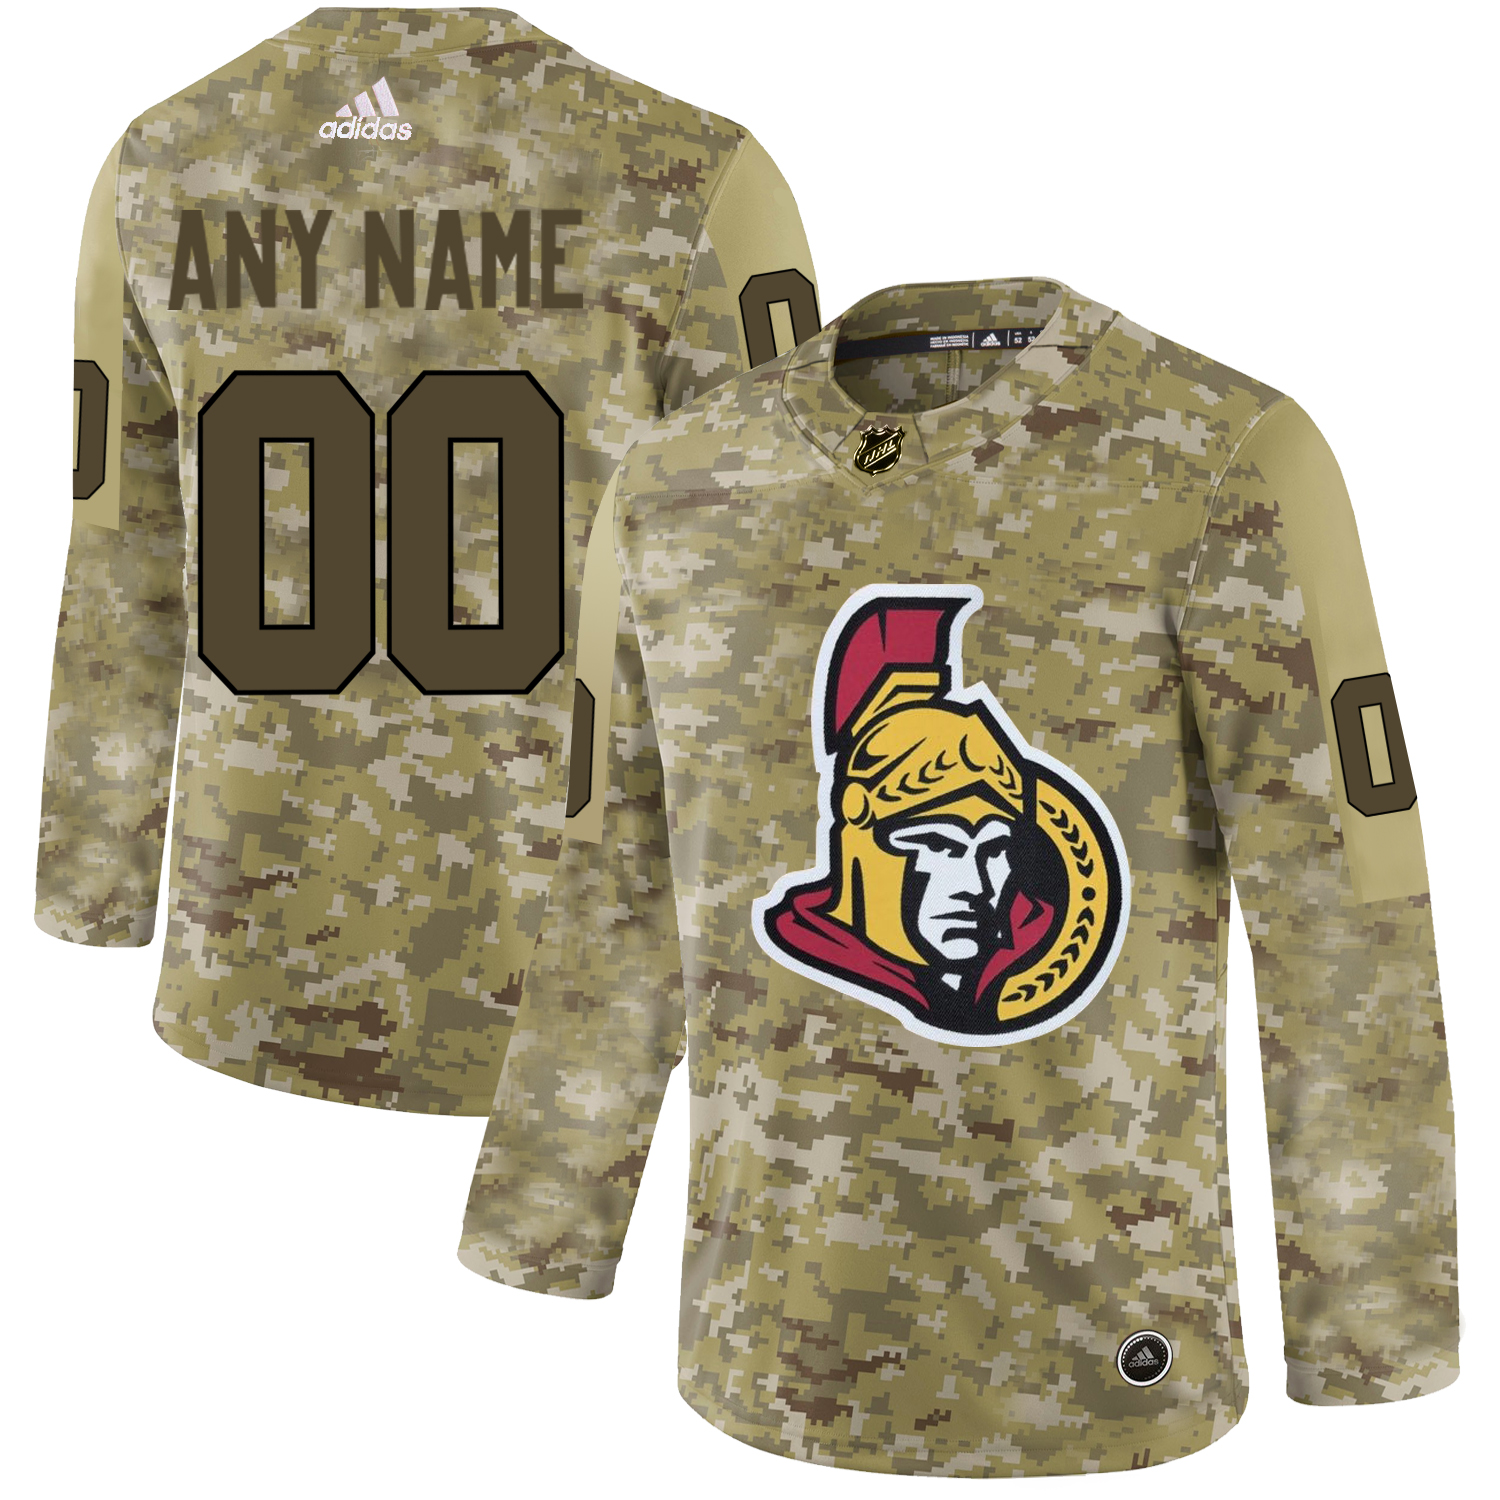 Ottawa Senators Camo Men's Customized Adidas Jersey